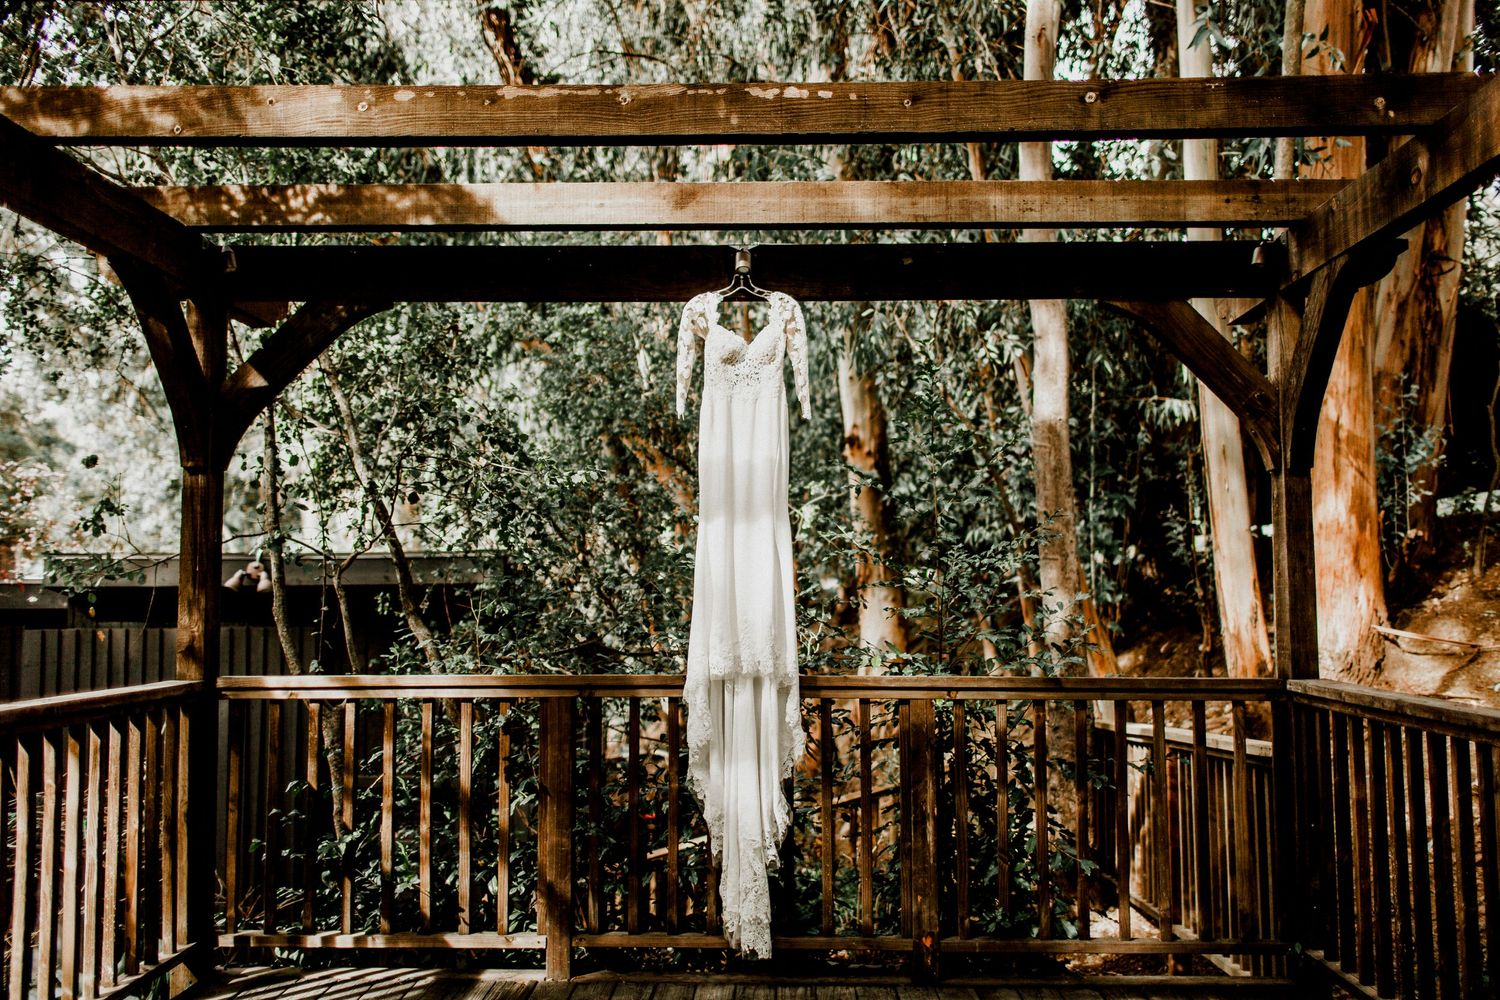 bride's wedding dress hanging on porch at calamigos ranch malibu